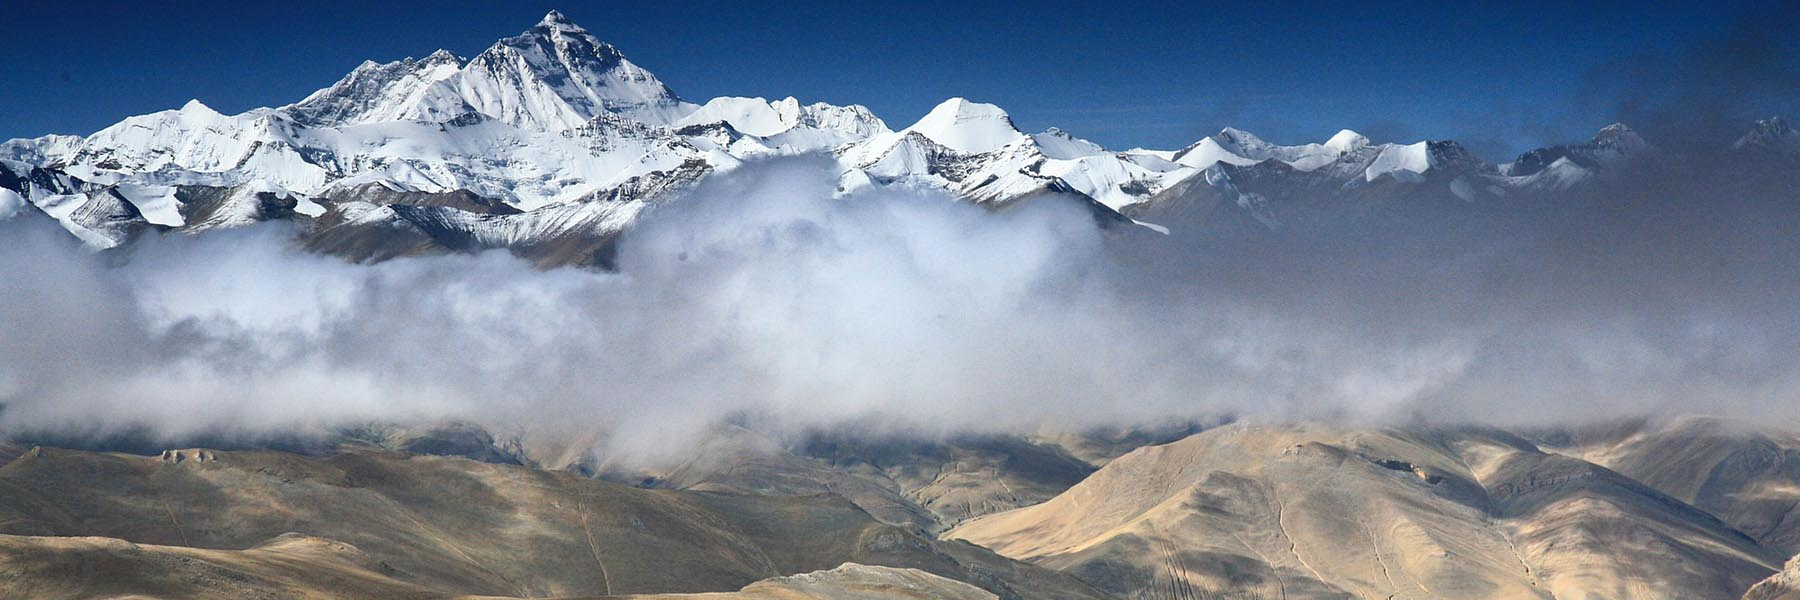 Everest Panaroma Trek